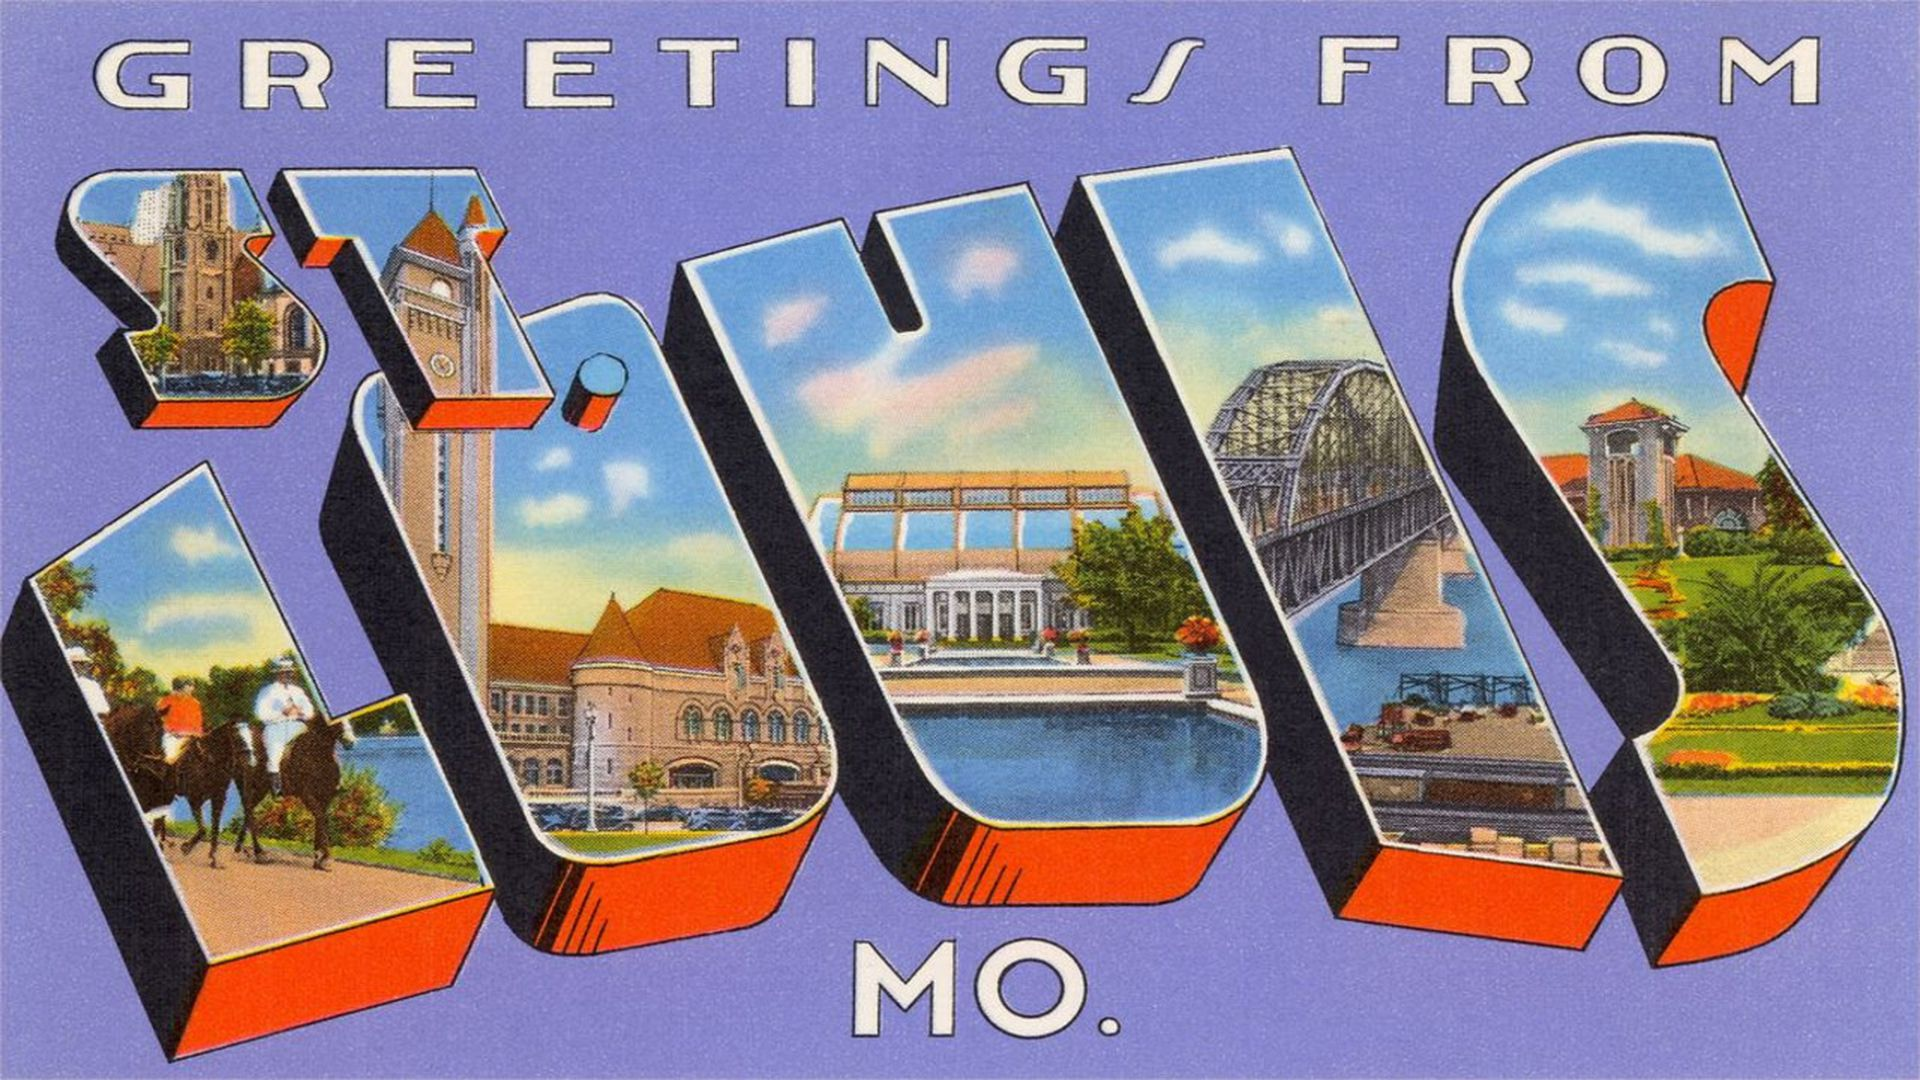 Postcard that says greetings from St. Louis Missouri